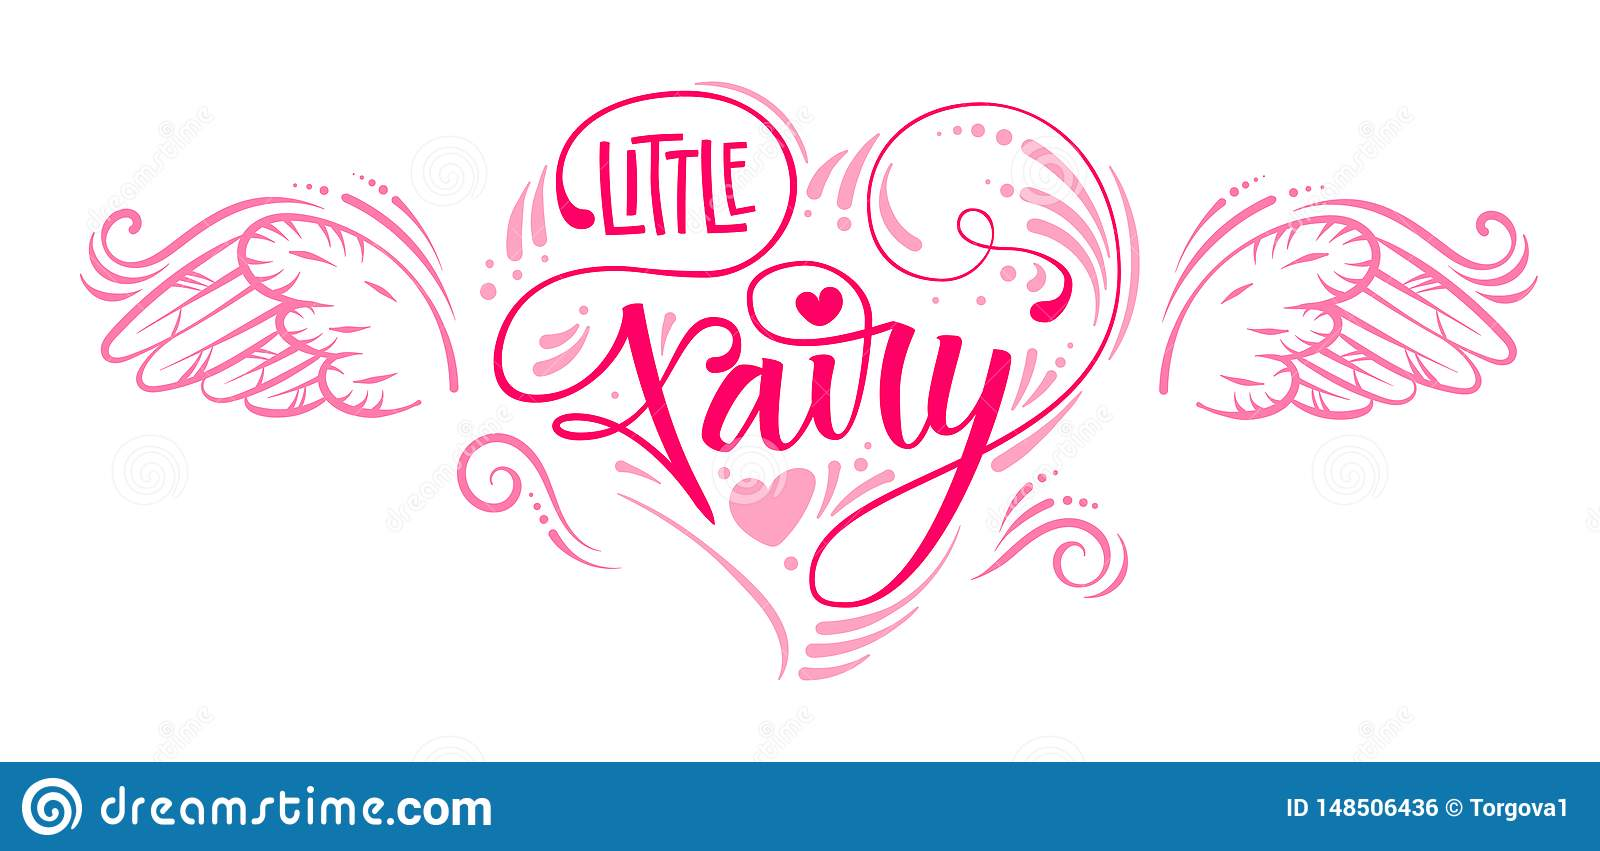 Little Fairy quote. Hand drawn modern calligraphy script stile lettering phrase in heart composition.